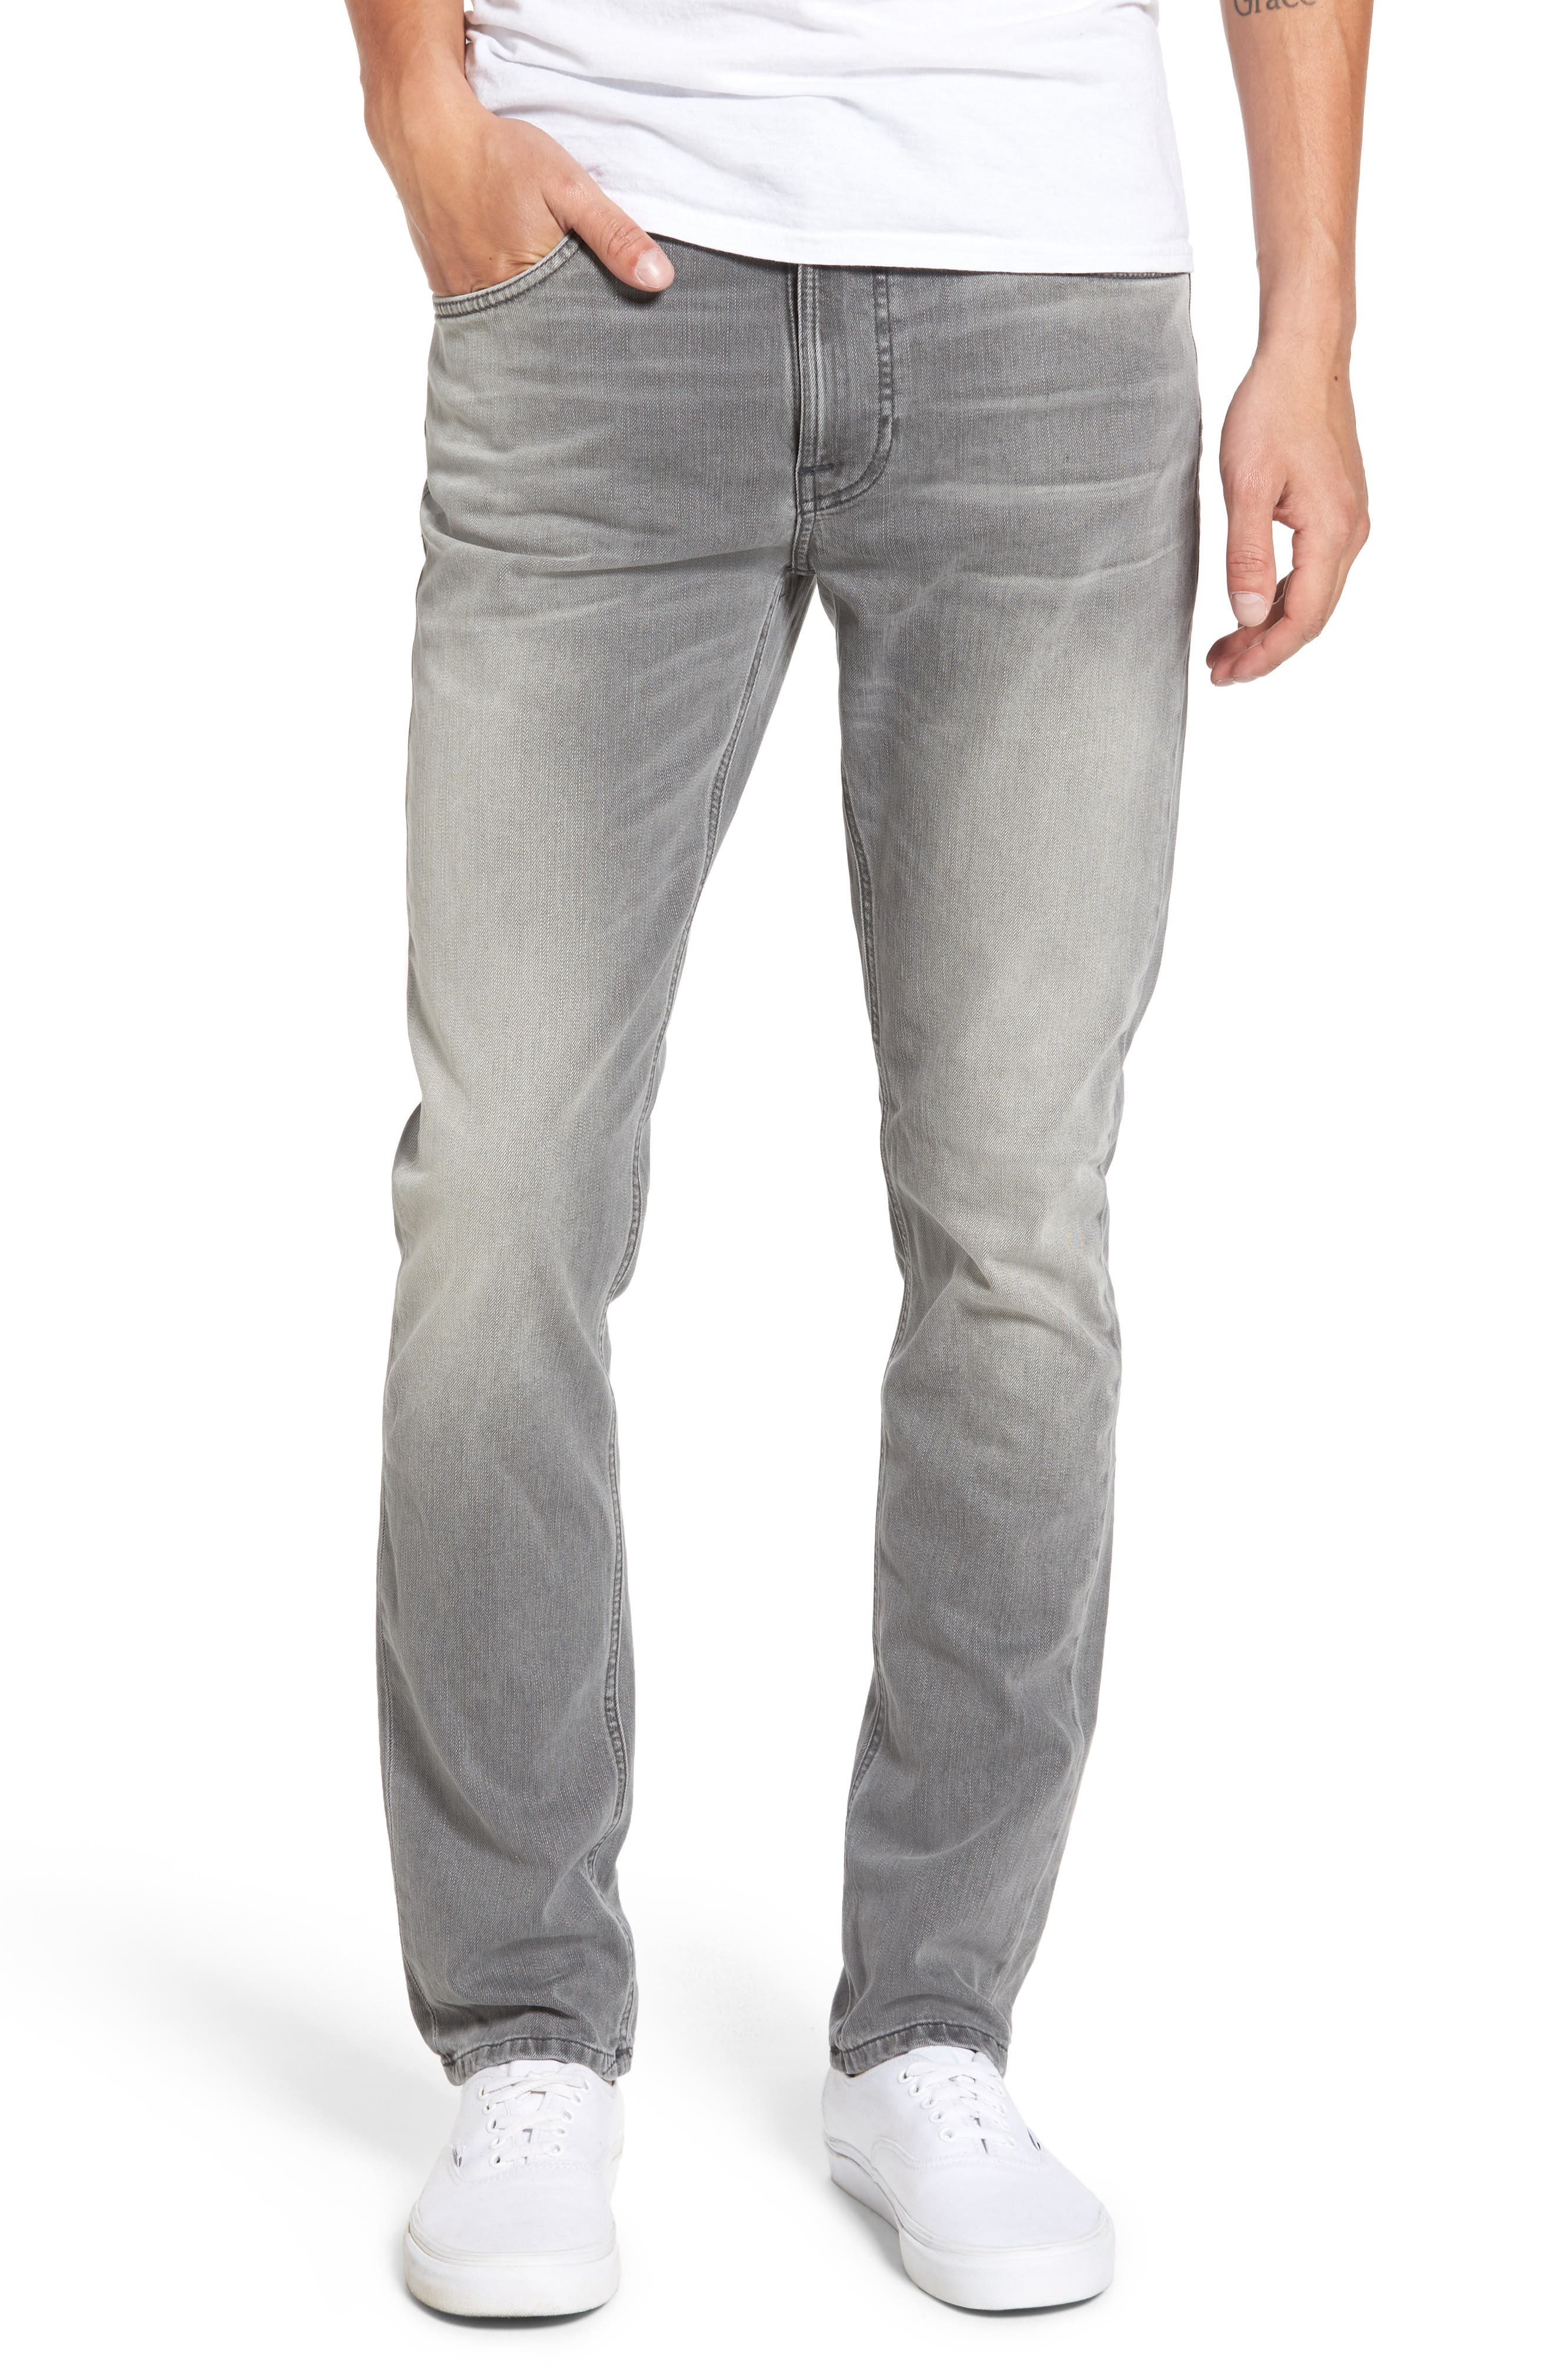 Main Image - Nudie Jeans Lean Dean Slouchy Skinny Fit Jeans (Grey Ace)